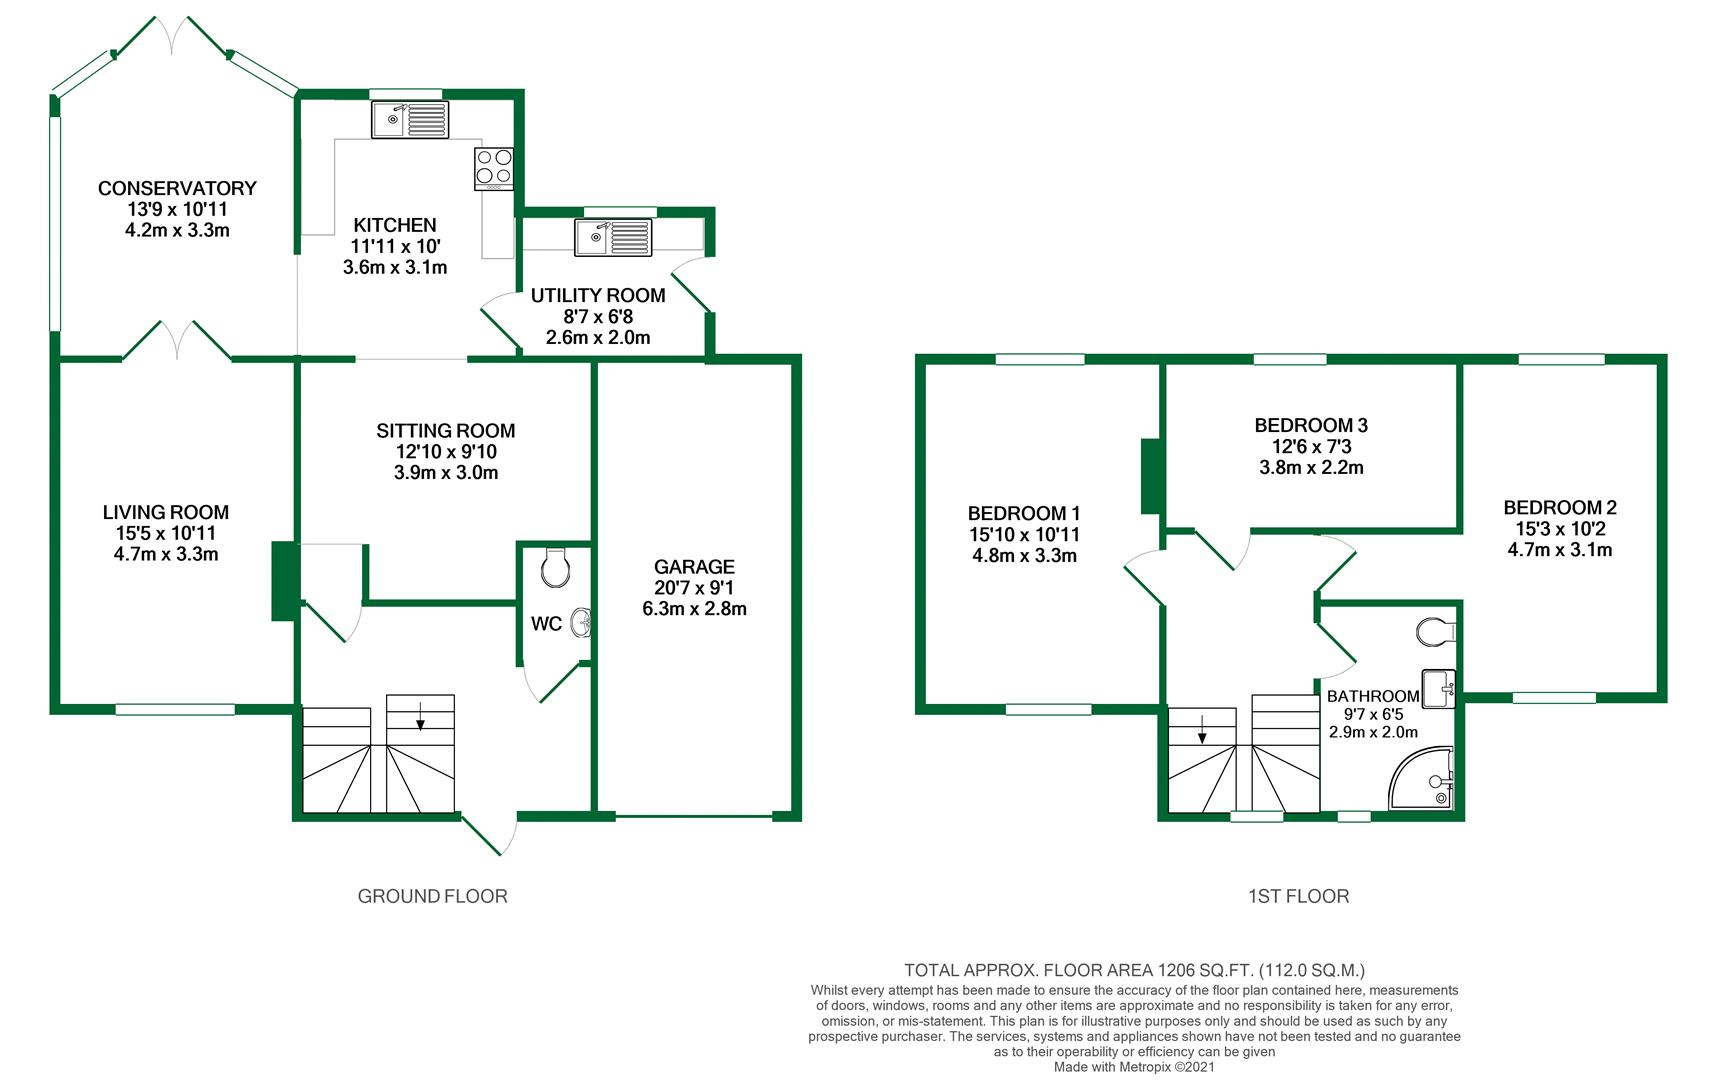 Floorplans For Choseley Road, Knowl Hill, Reading